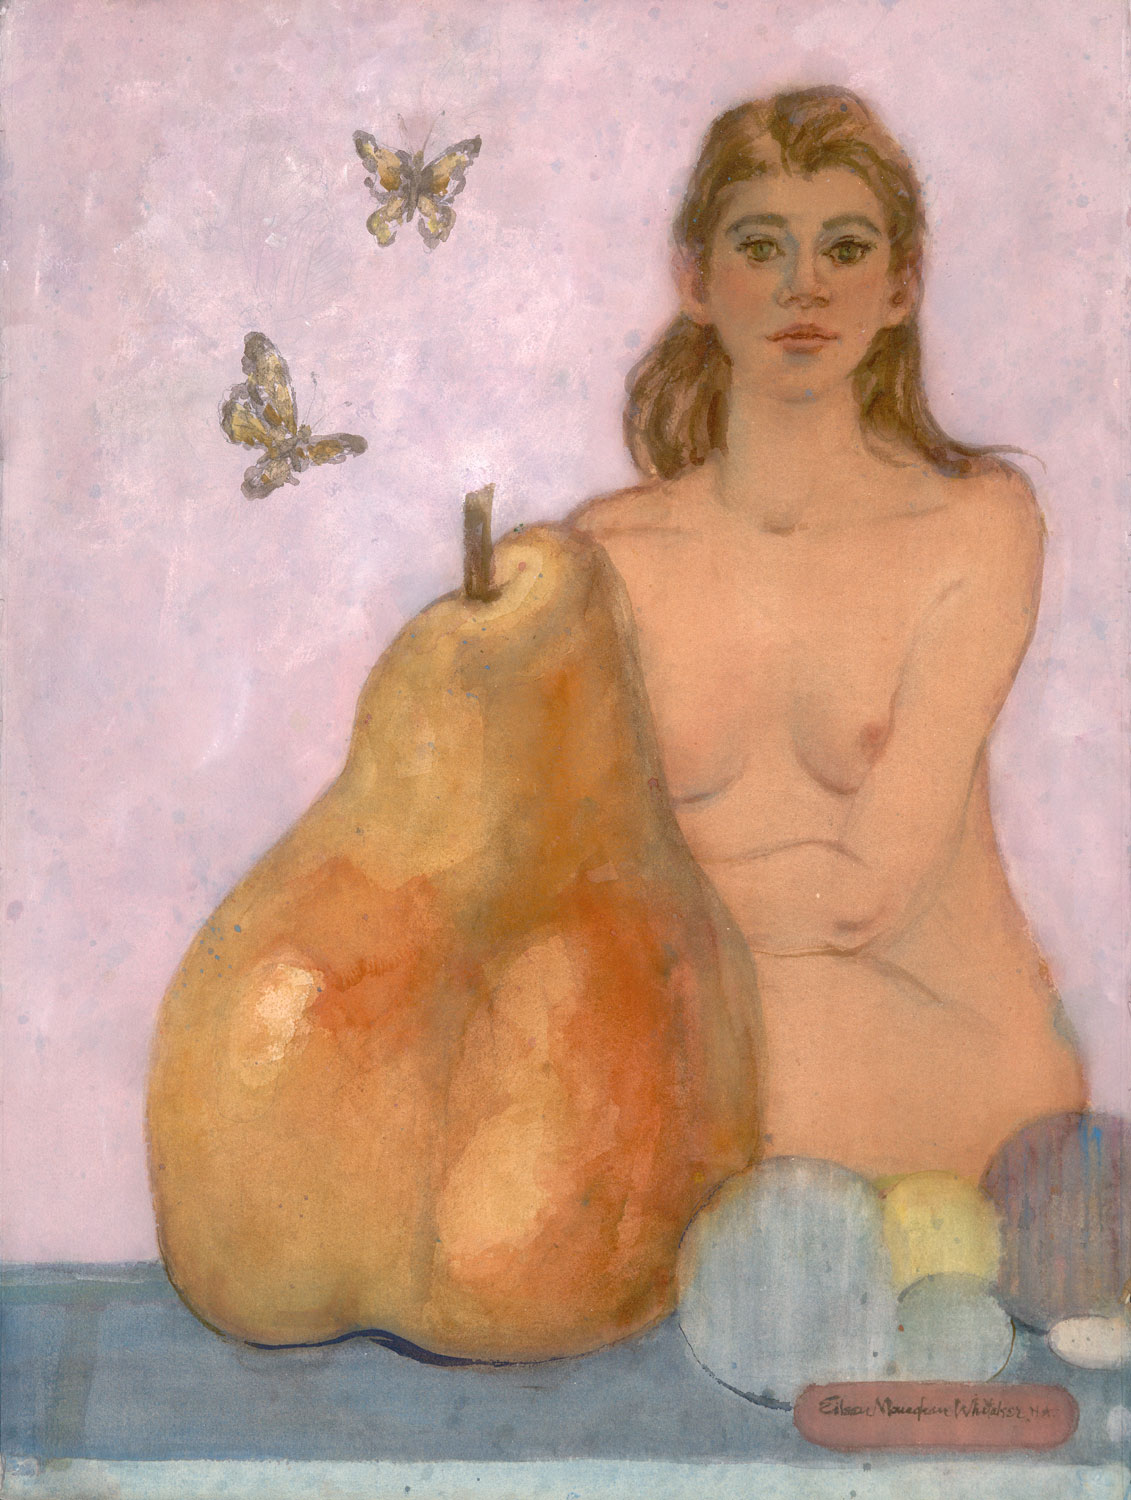 """The Pear Story"" 1999 © EIleen Monaghan Whitaker N.A. 30x22.5 inches Watercolor"